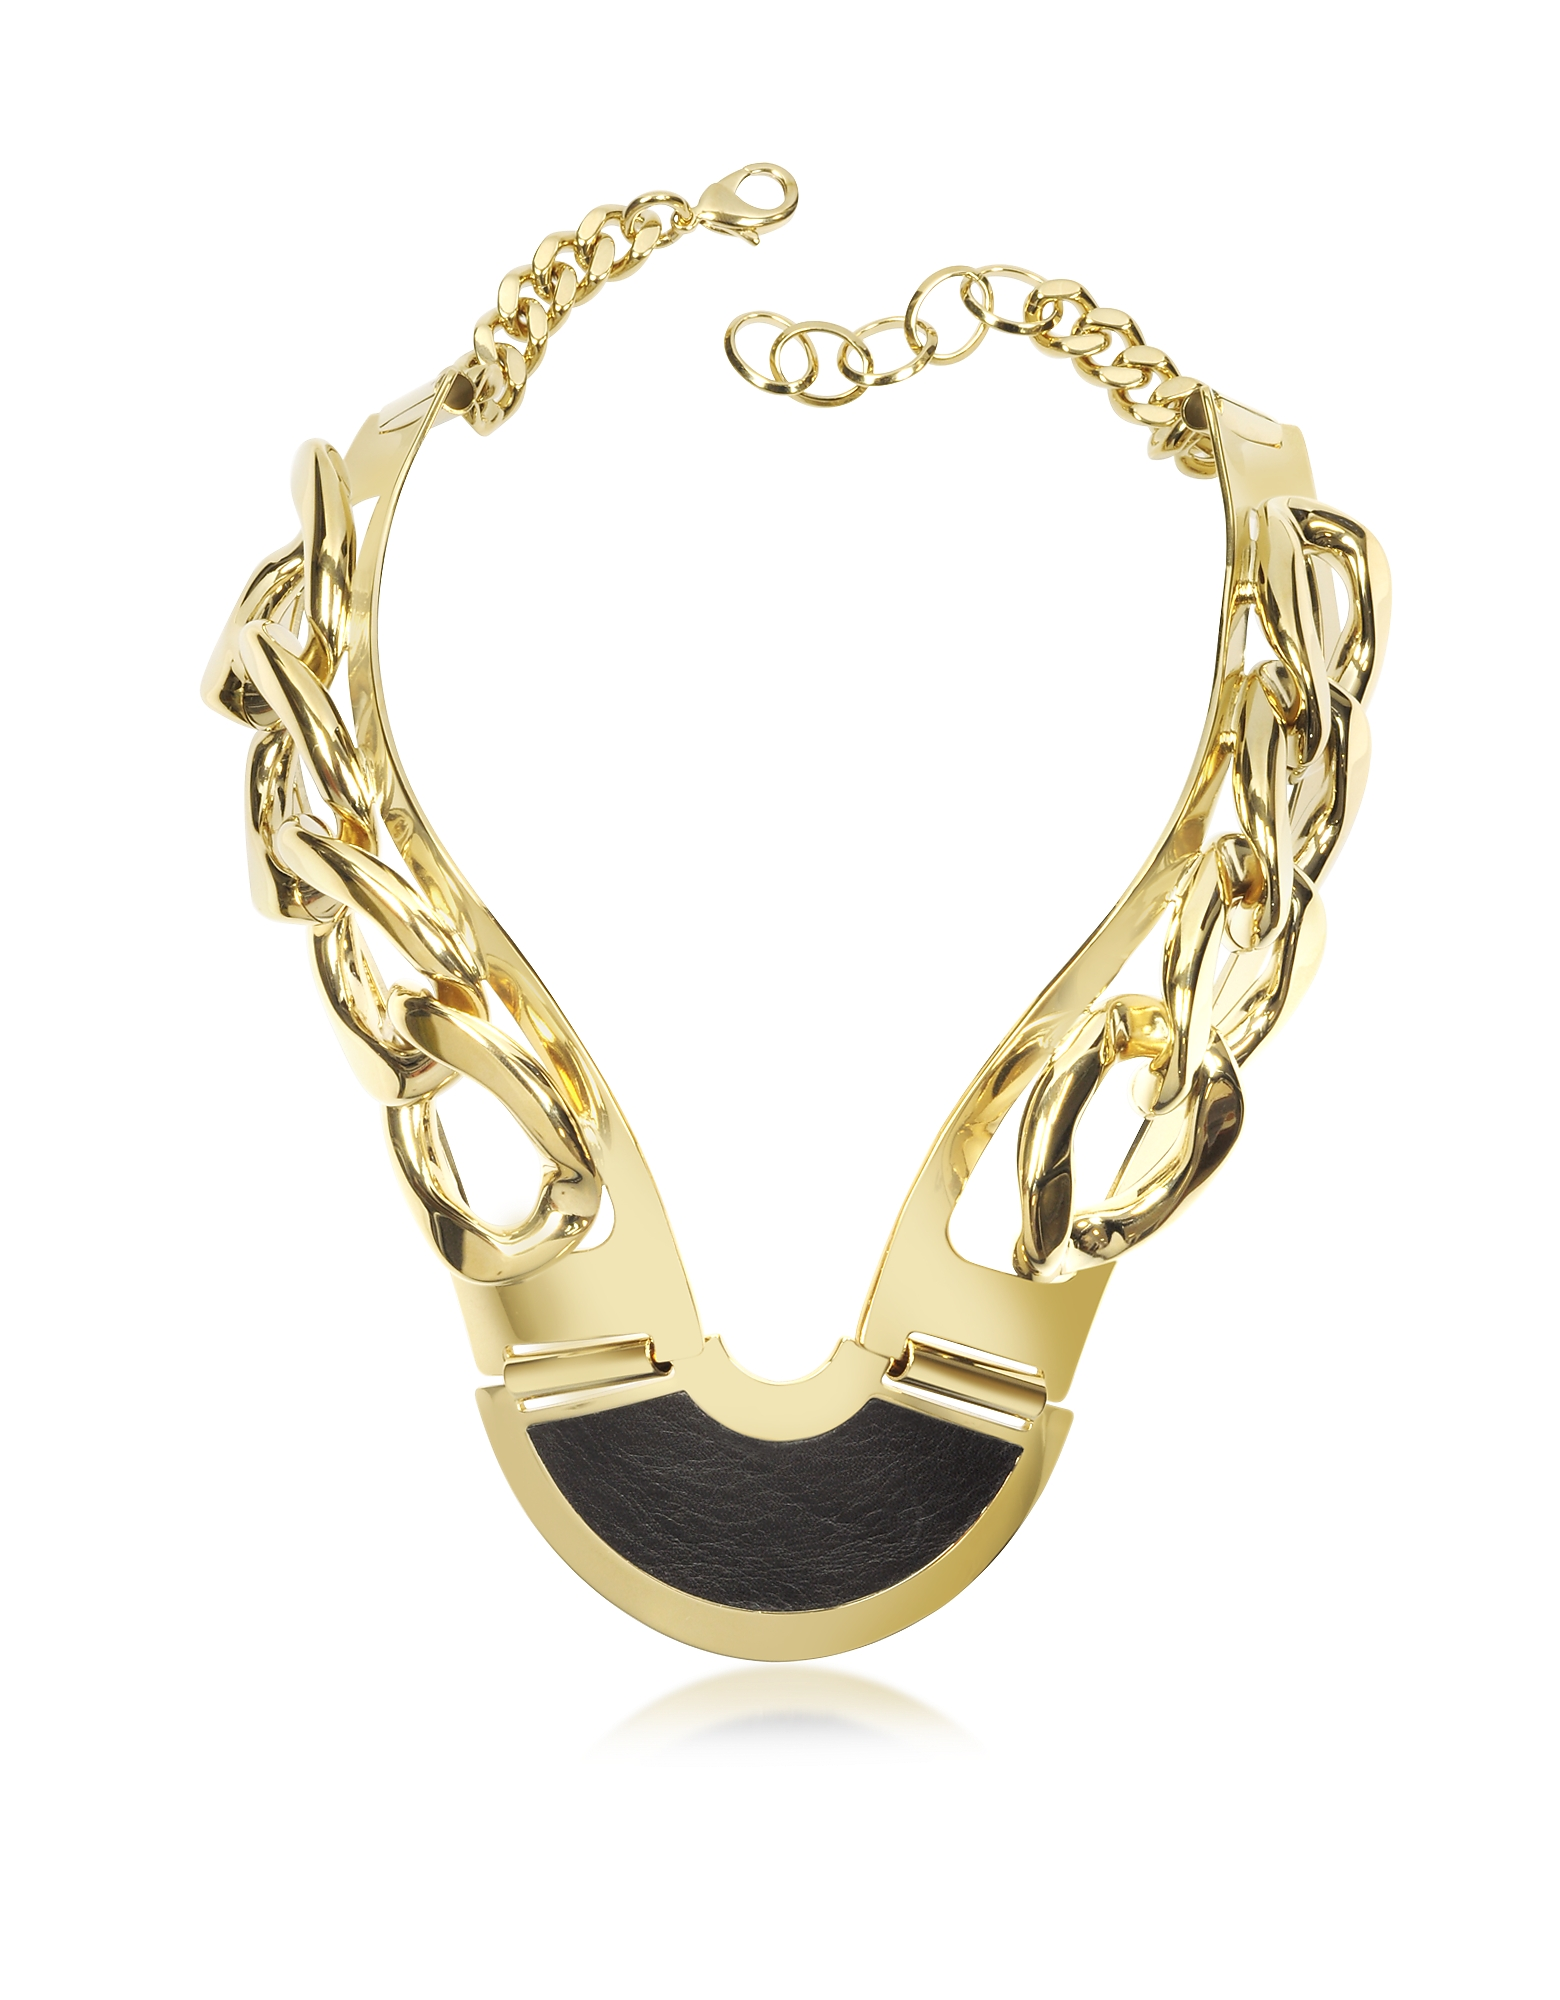 Pluma Necklaces, Gold Plated Brass and Black Leather Collar Chain Necklace